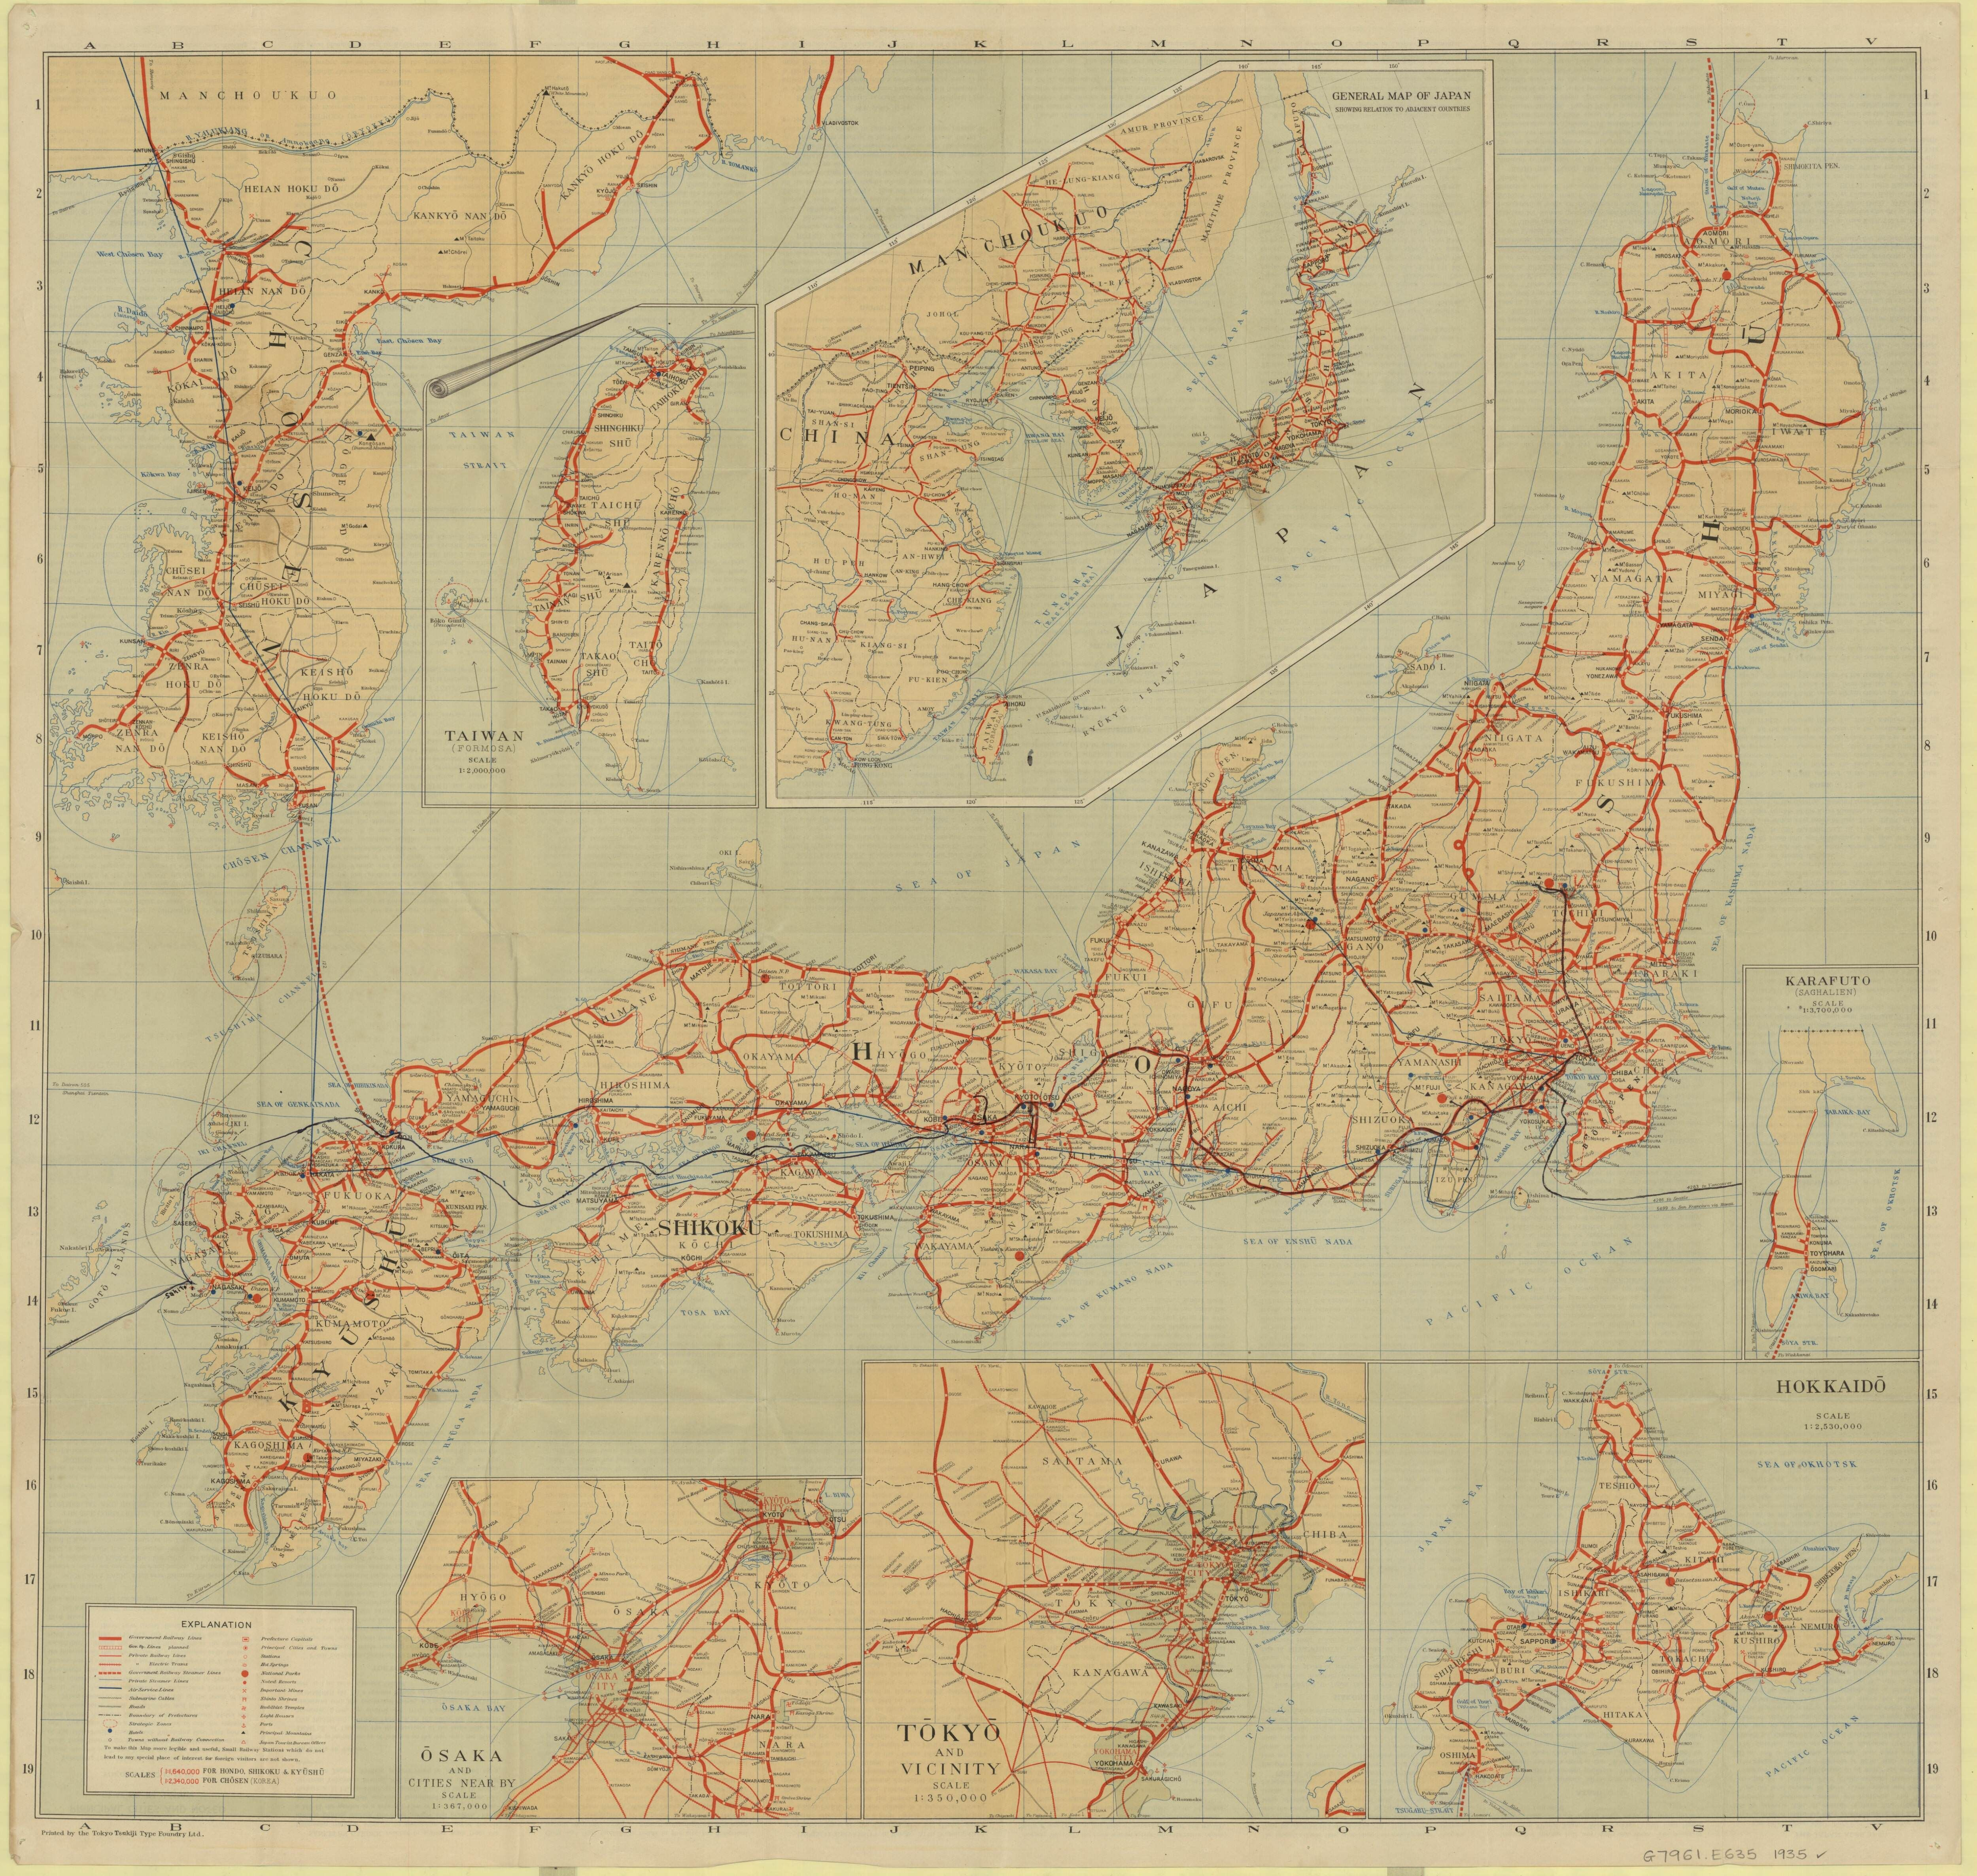 1935 Travelers' map of Japan : including Chosen (Korea) and Taiwan on map of cuban missile crisis, map of pre world war 1, map of afghan war, map of world war 11, map of u.s. civil war, map of great war, map of nigerian civil war, map of vietnam war, map of world war i, map of gulf war, map of korean peninsula, map of berlin blockade, map of detente, map of islamic war, map of pacific war, map of korea, map of indian war, map of first indochina war, map of air force, map of asia,